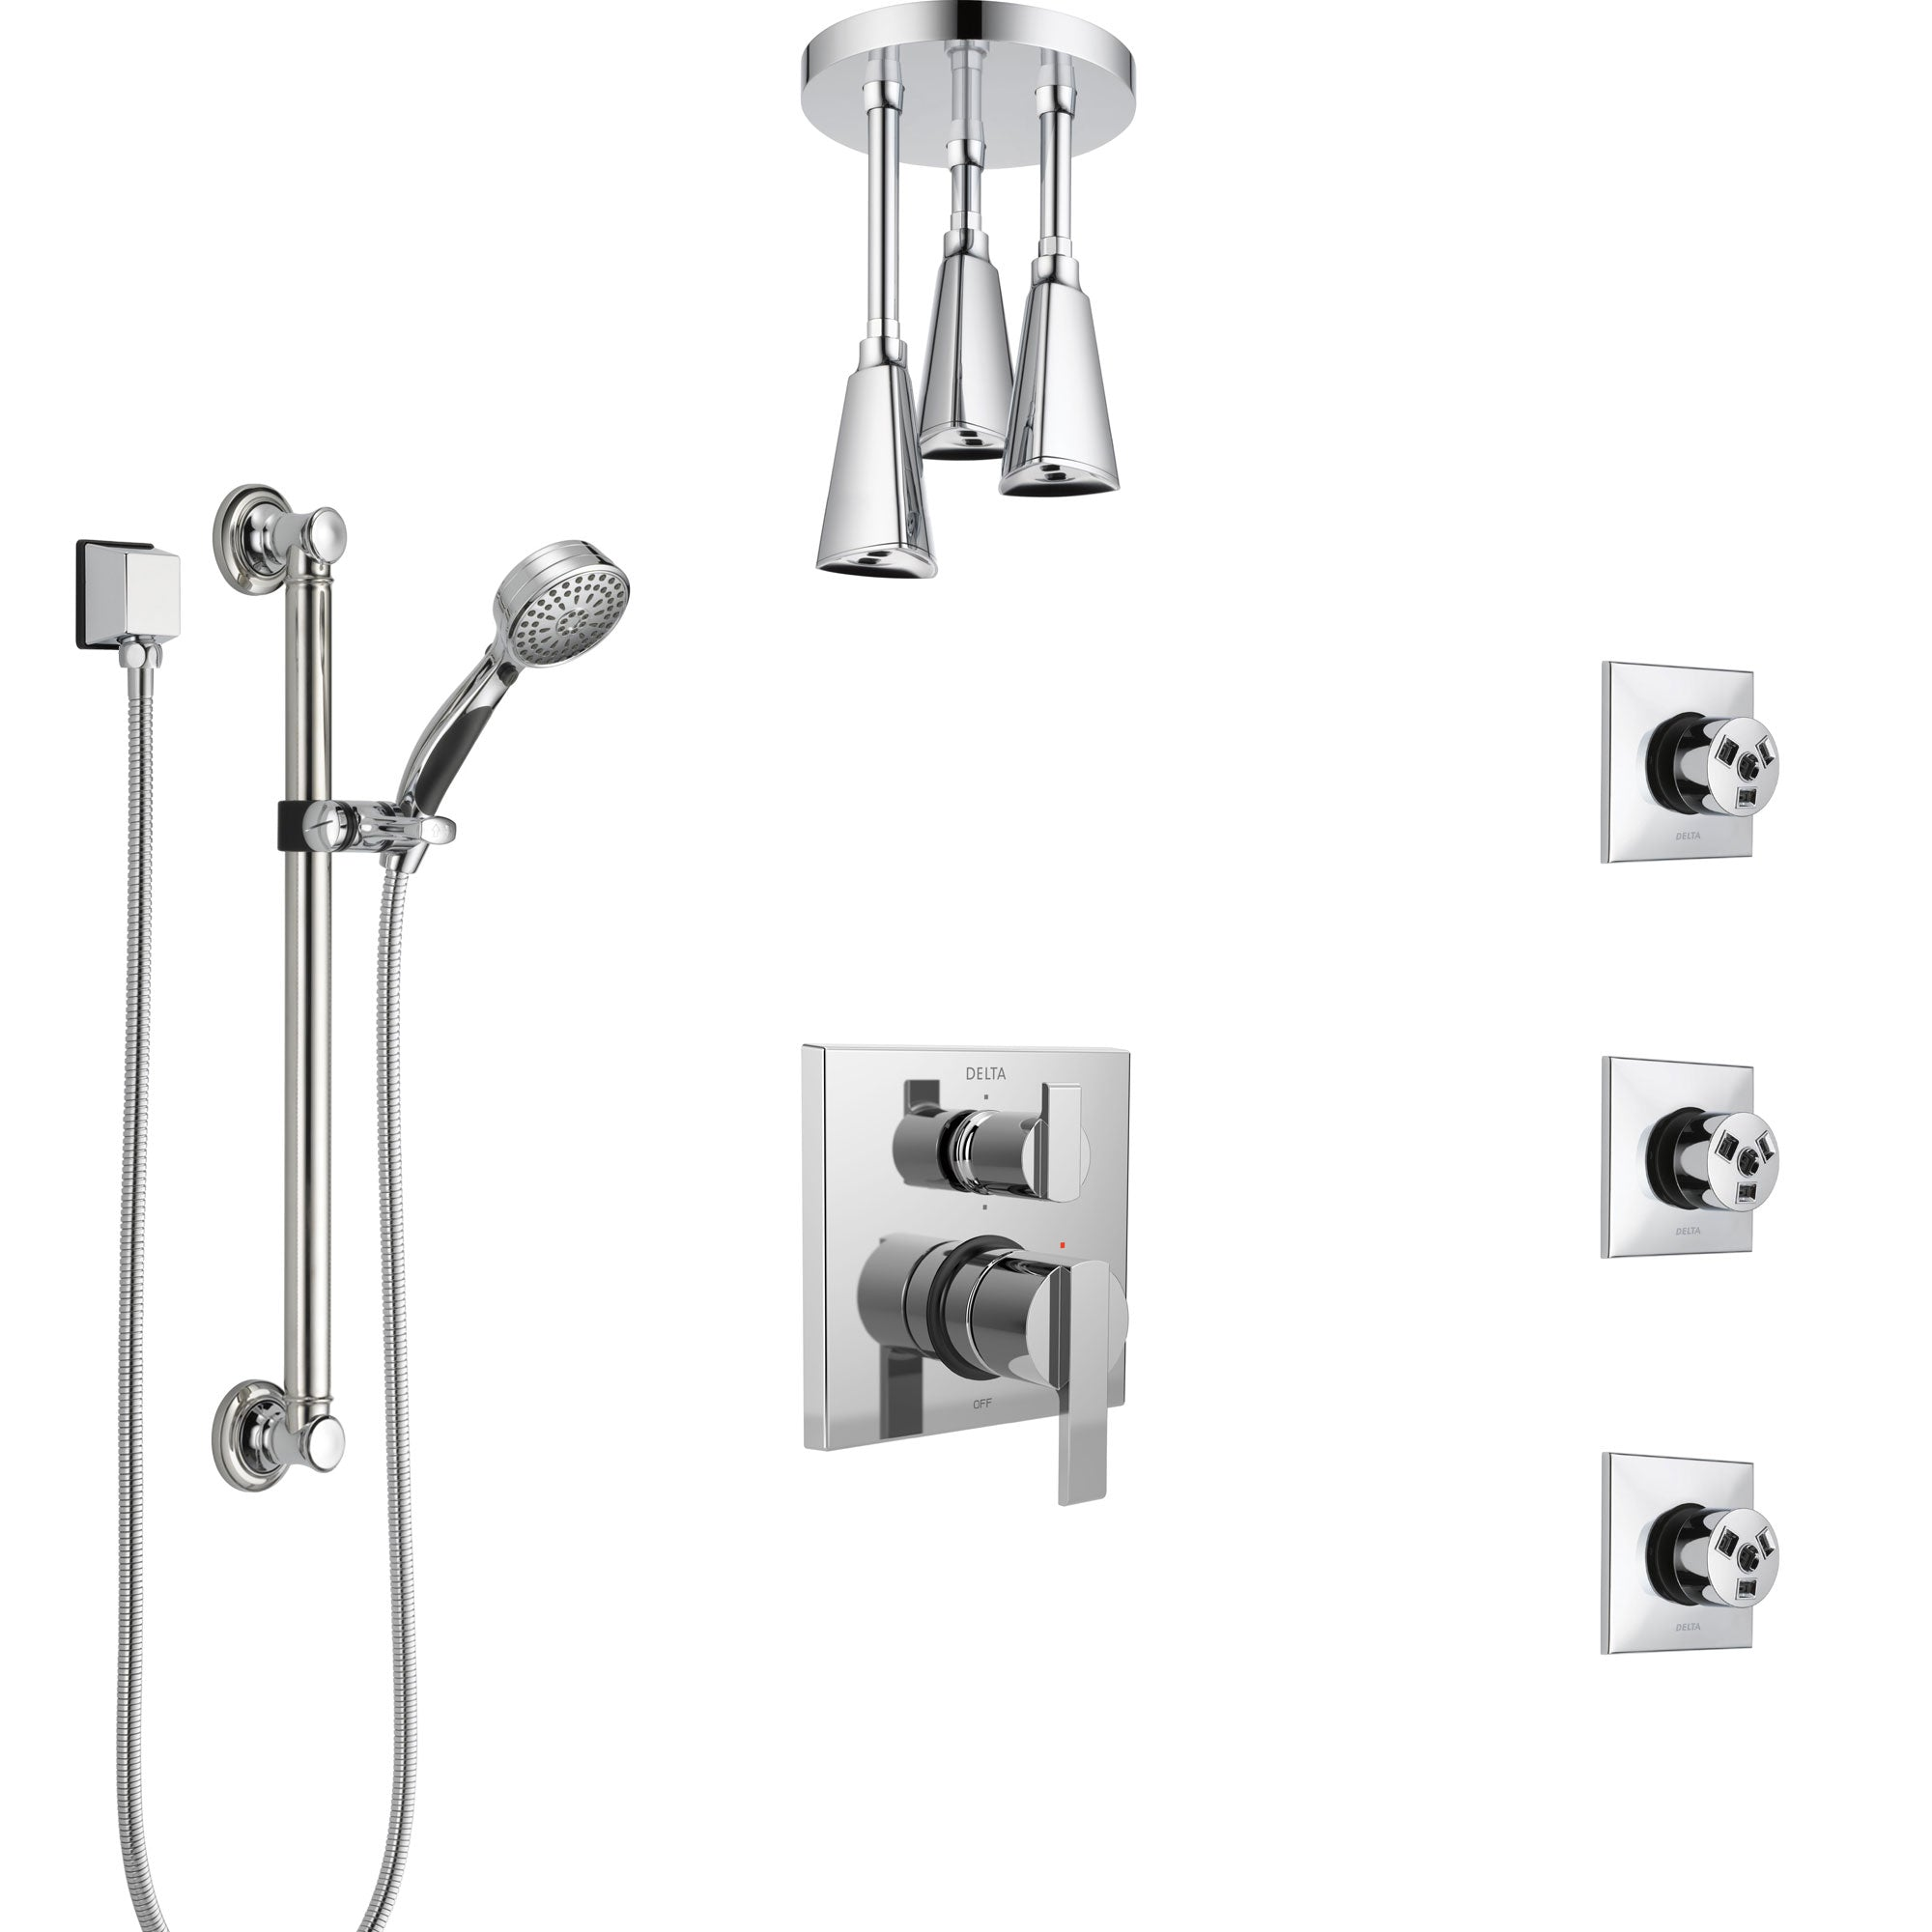 Delta Ara Chrome Shower System with Control Handle, Integrated Diverter, Ceiling Mount Showerhead, 3 Body Sprays, and Grab Bar Hand Shower SS249675